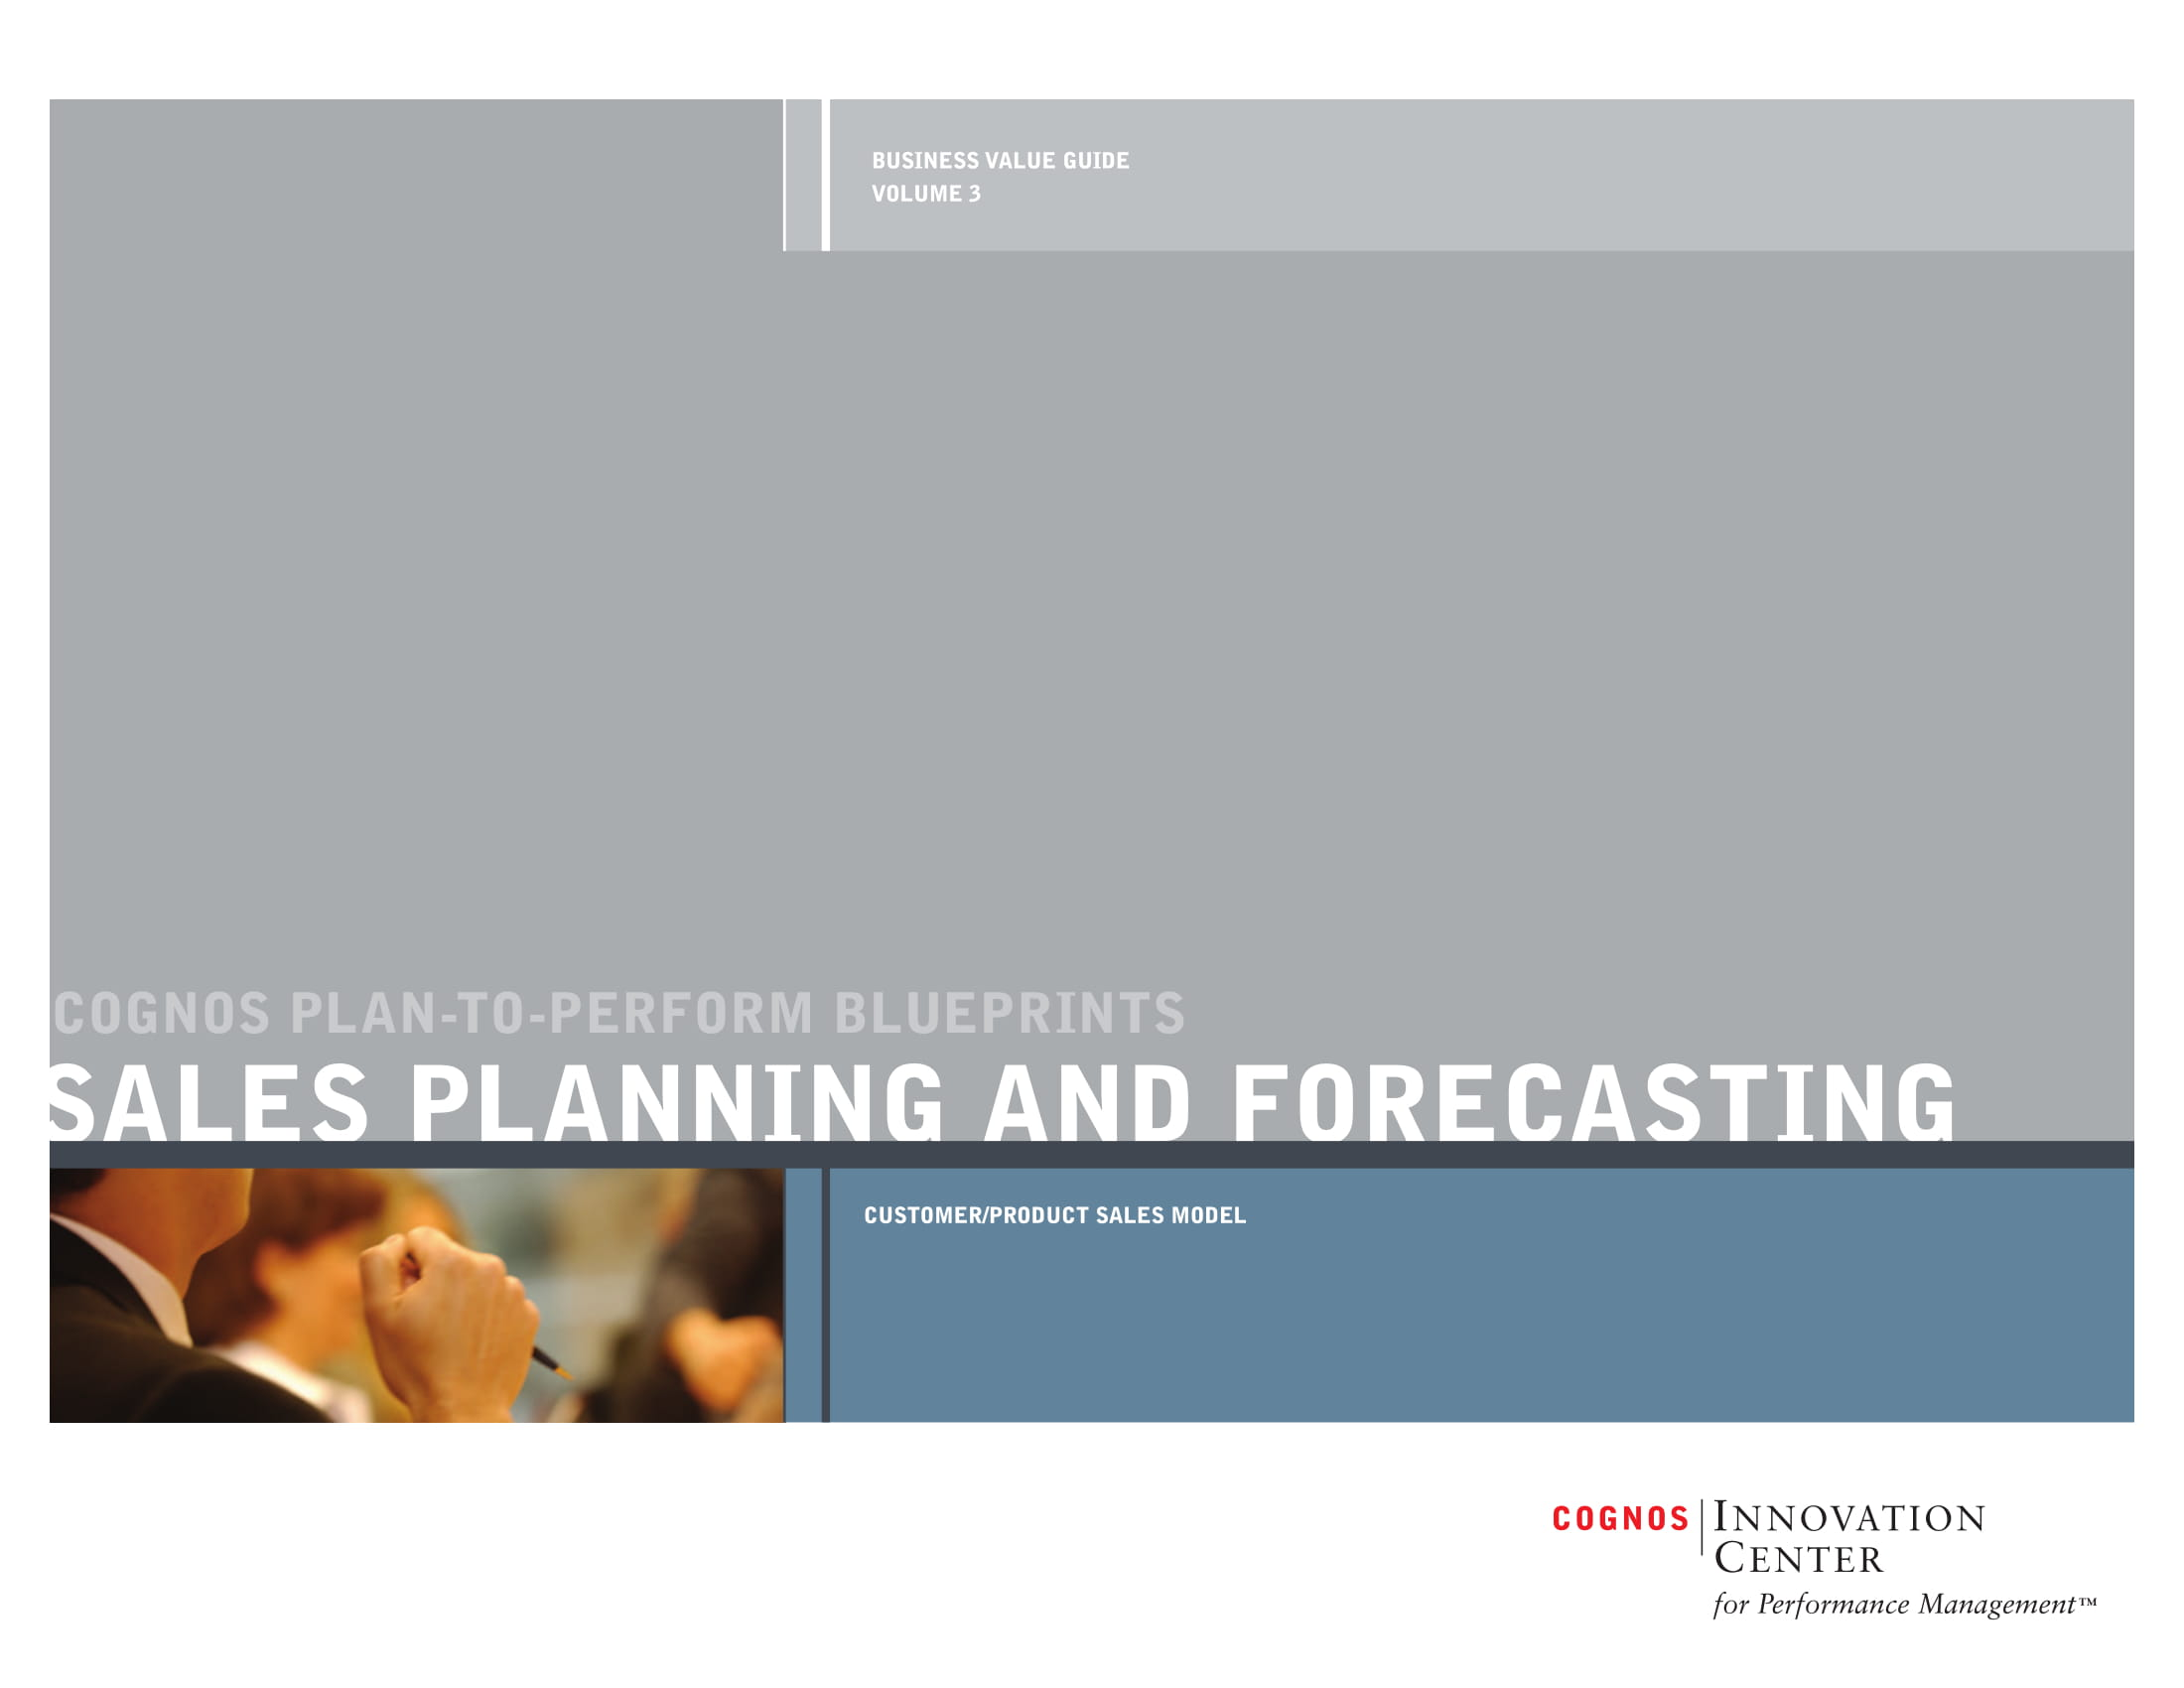 sales action planning and forecasting example 01